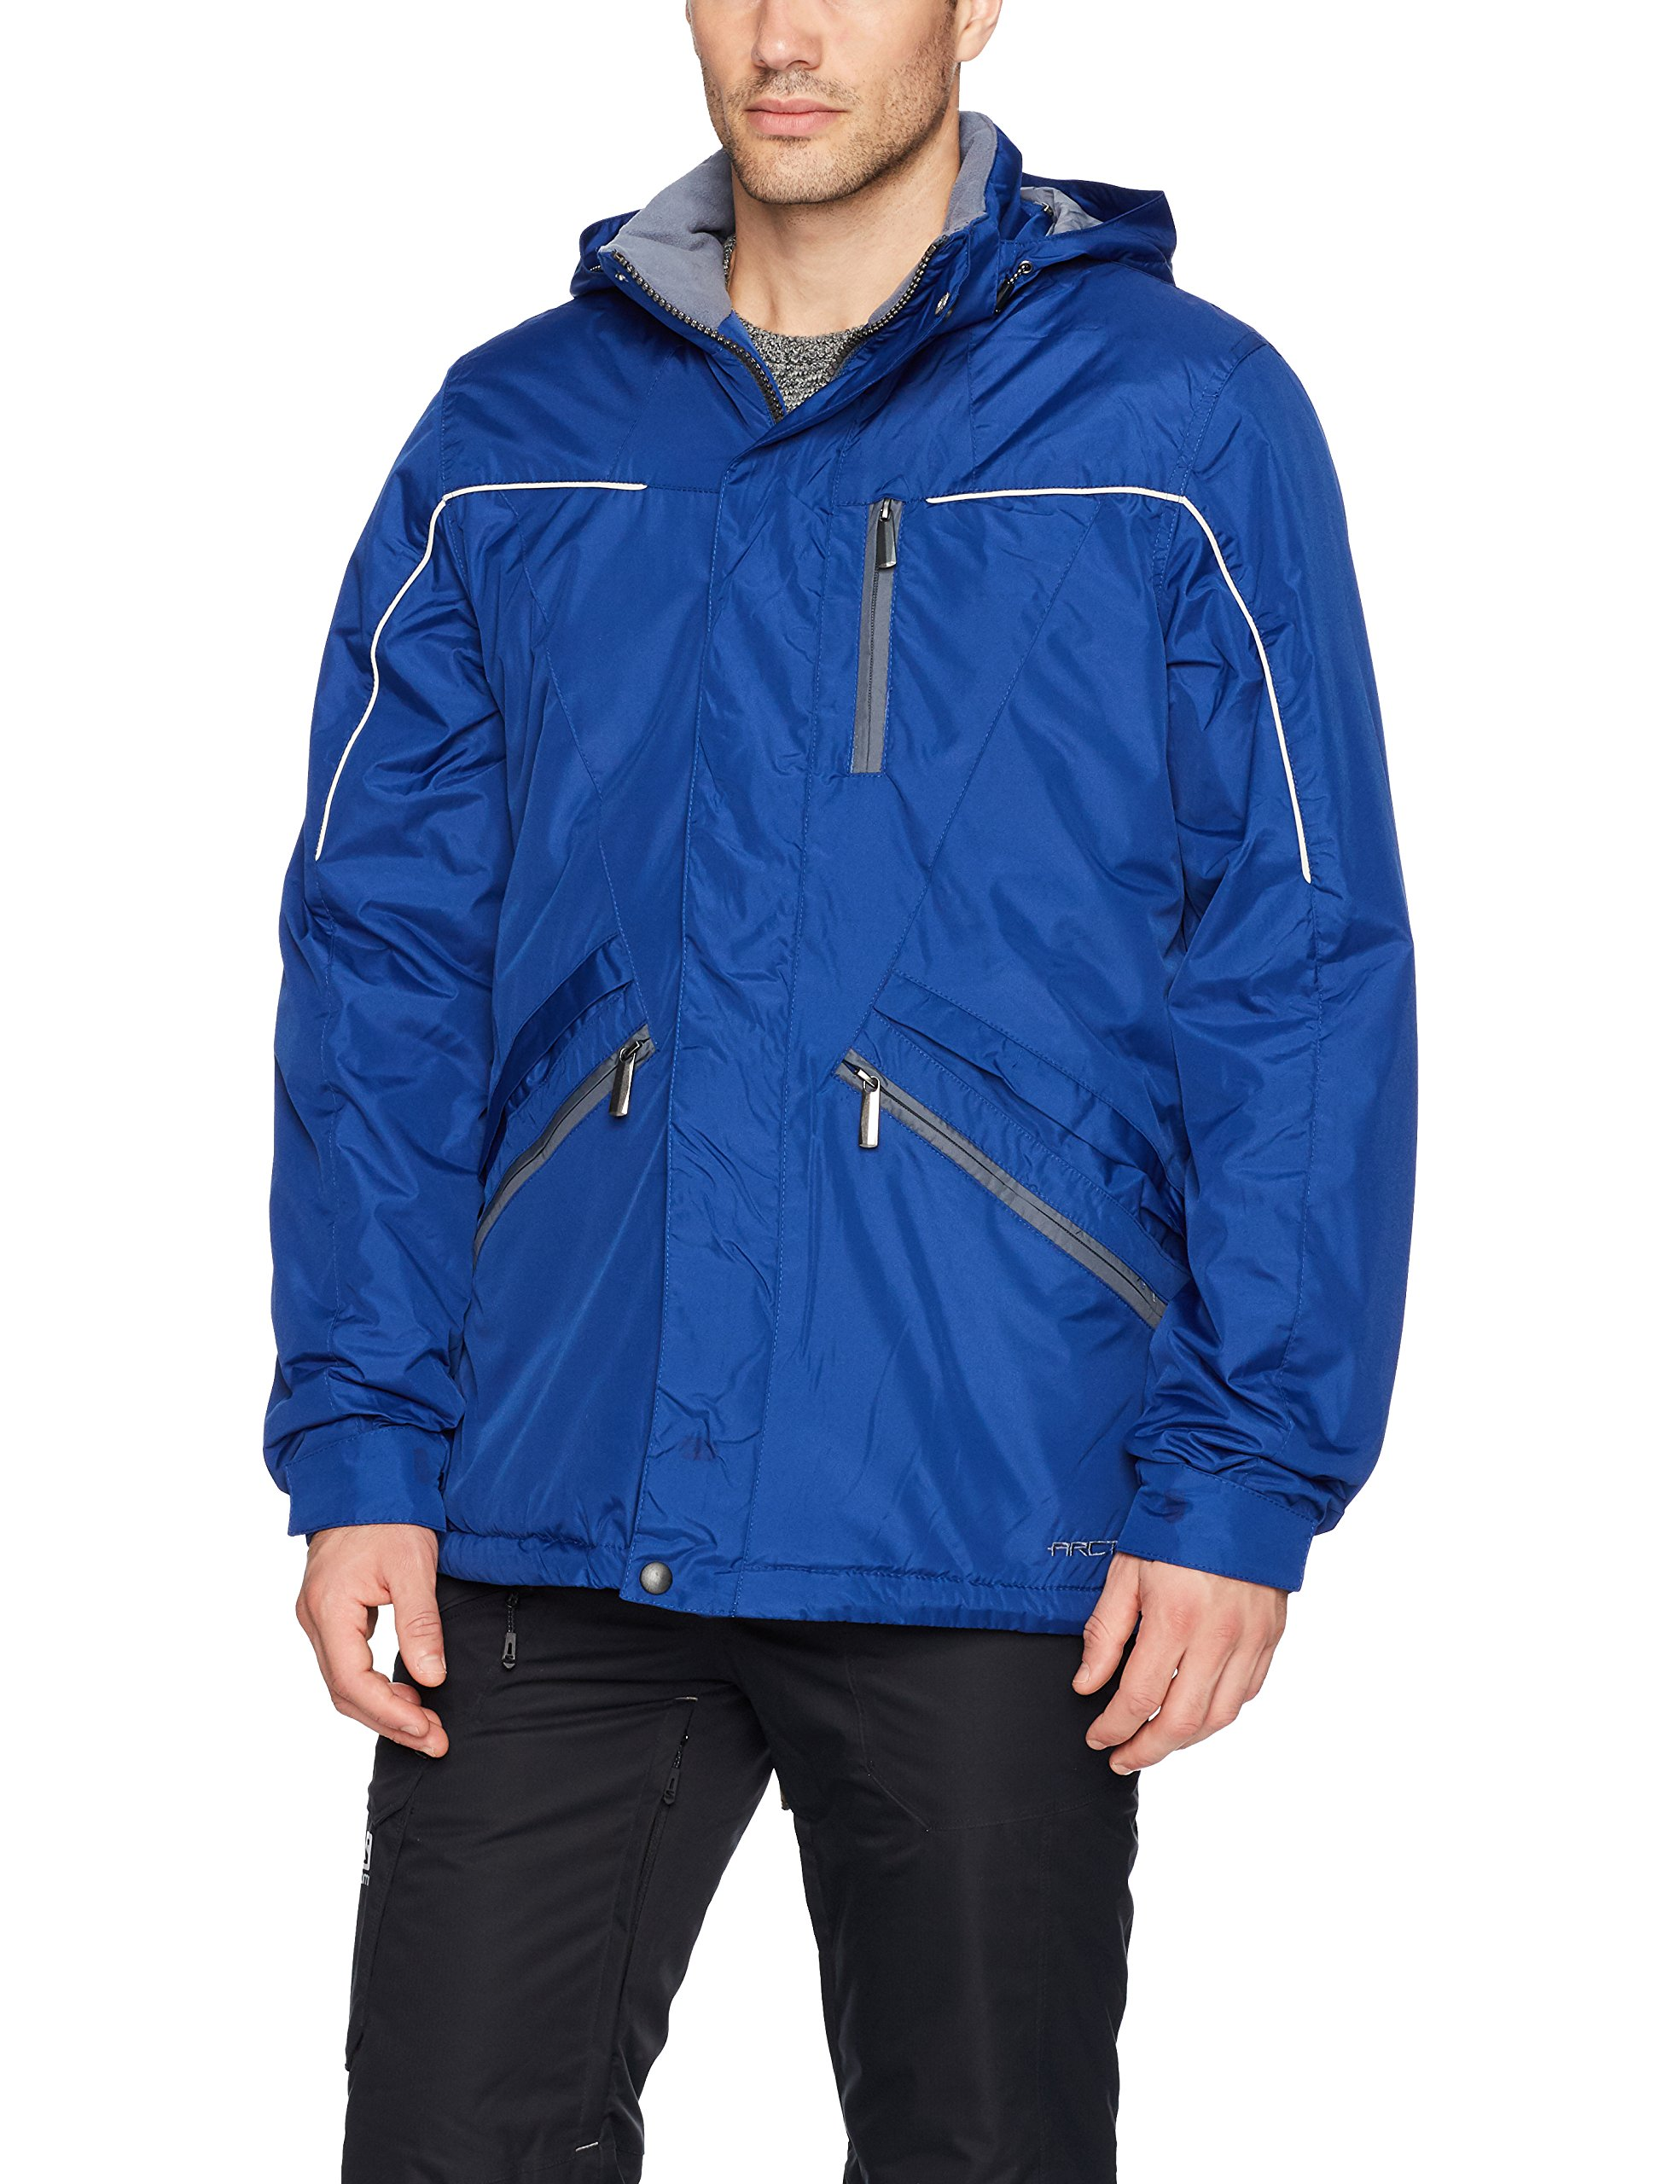 Arctix Men's Slope Insulated Winter Jacket, X-Large, Royal Blue